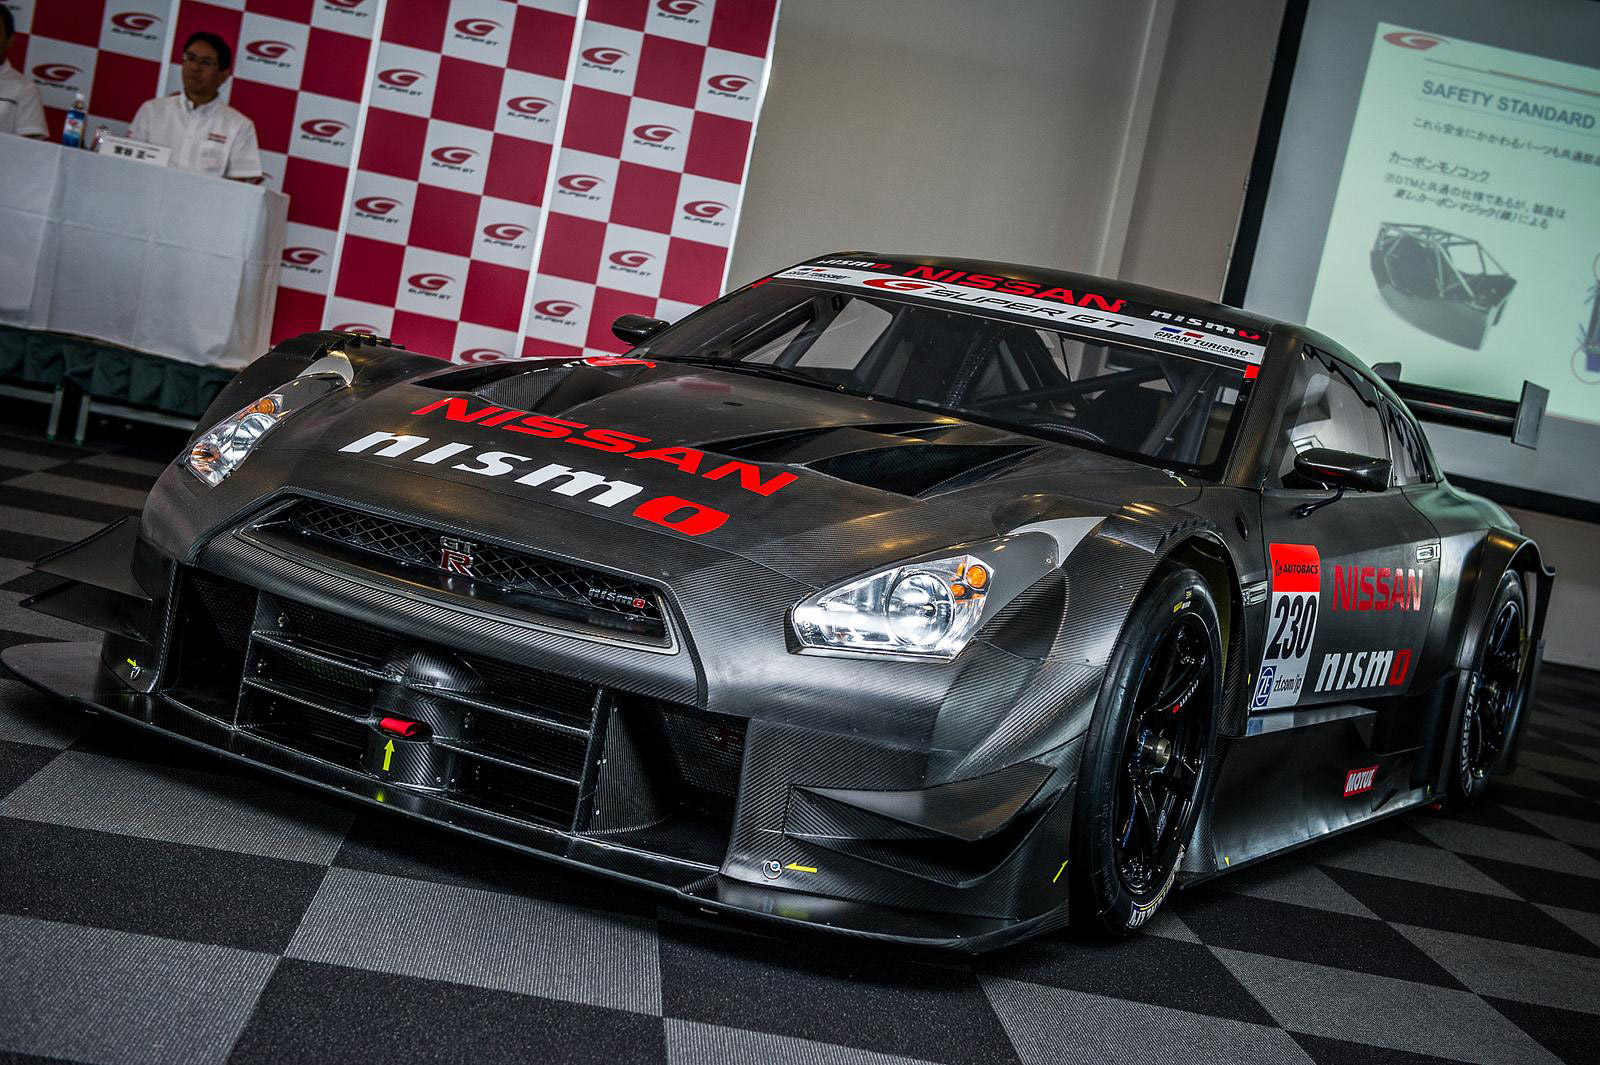 2014 nissan gt r nismo gt500 super gt race car revealed. Black Bedroom Furniture Sets. Home Design Ideas